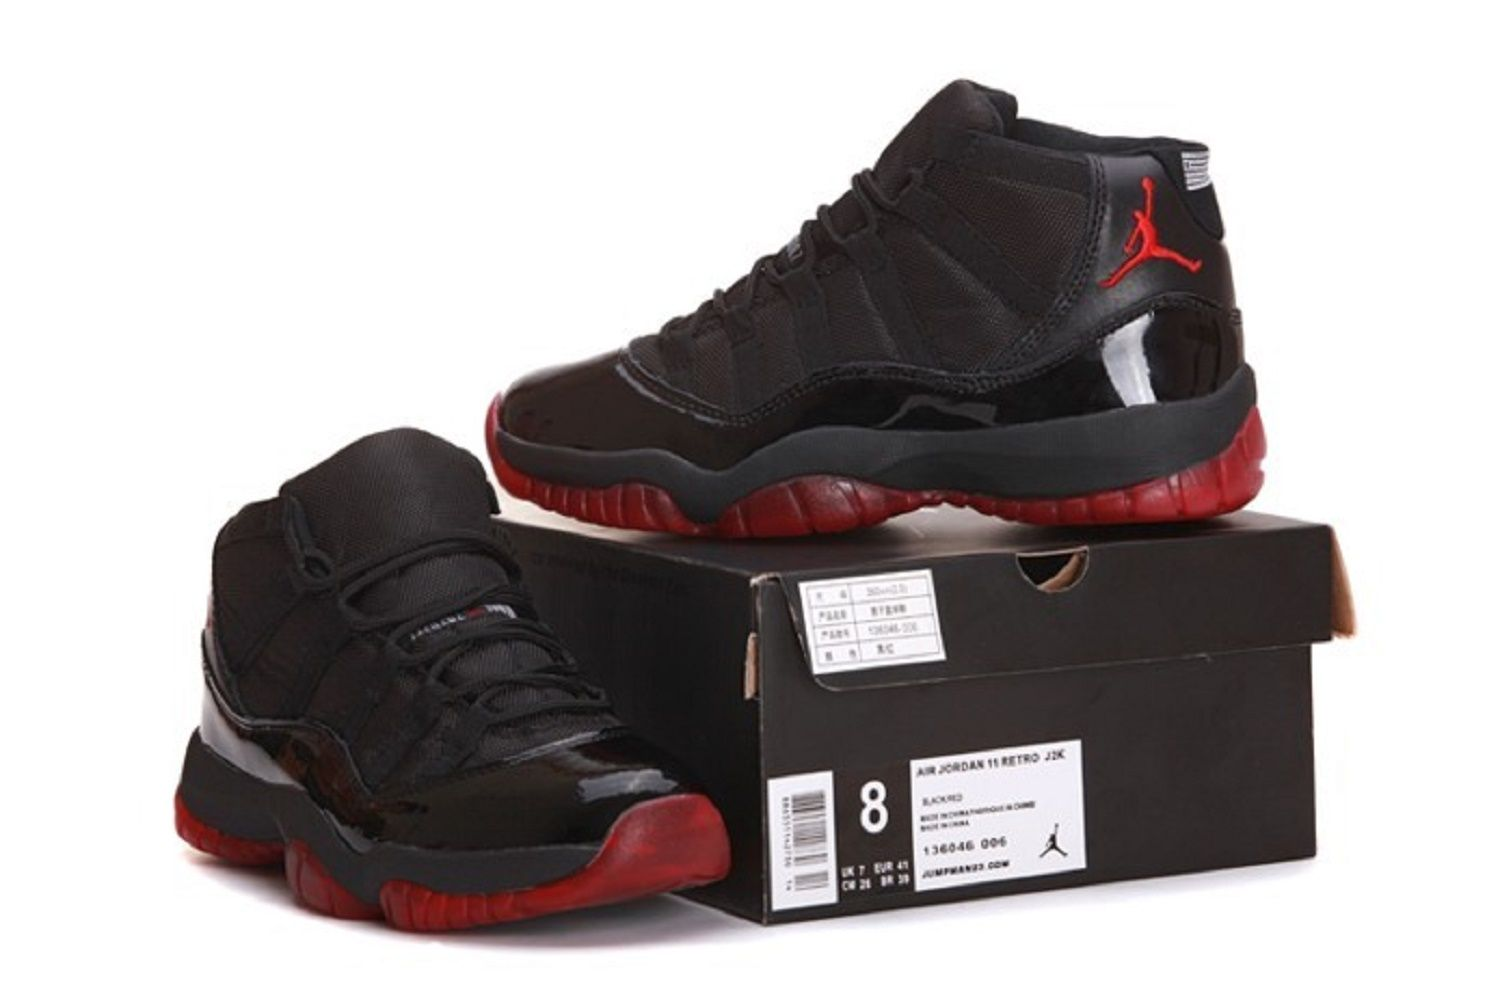 Air Jordan XI \\u2013 Black/Red. via centralstatesoil.com